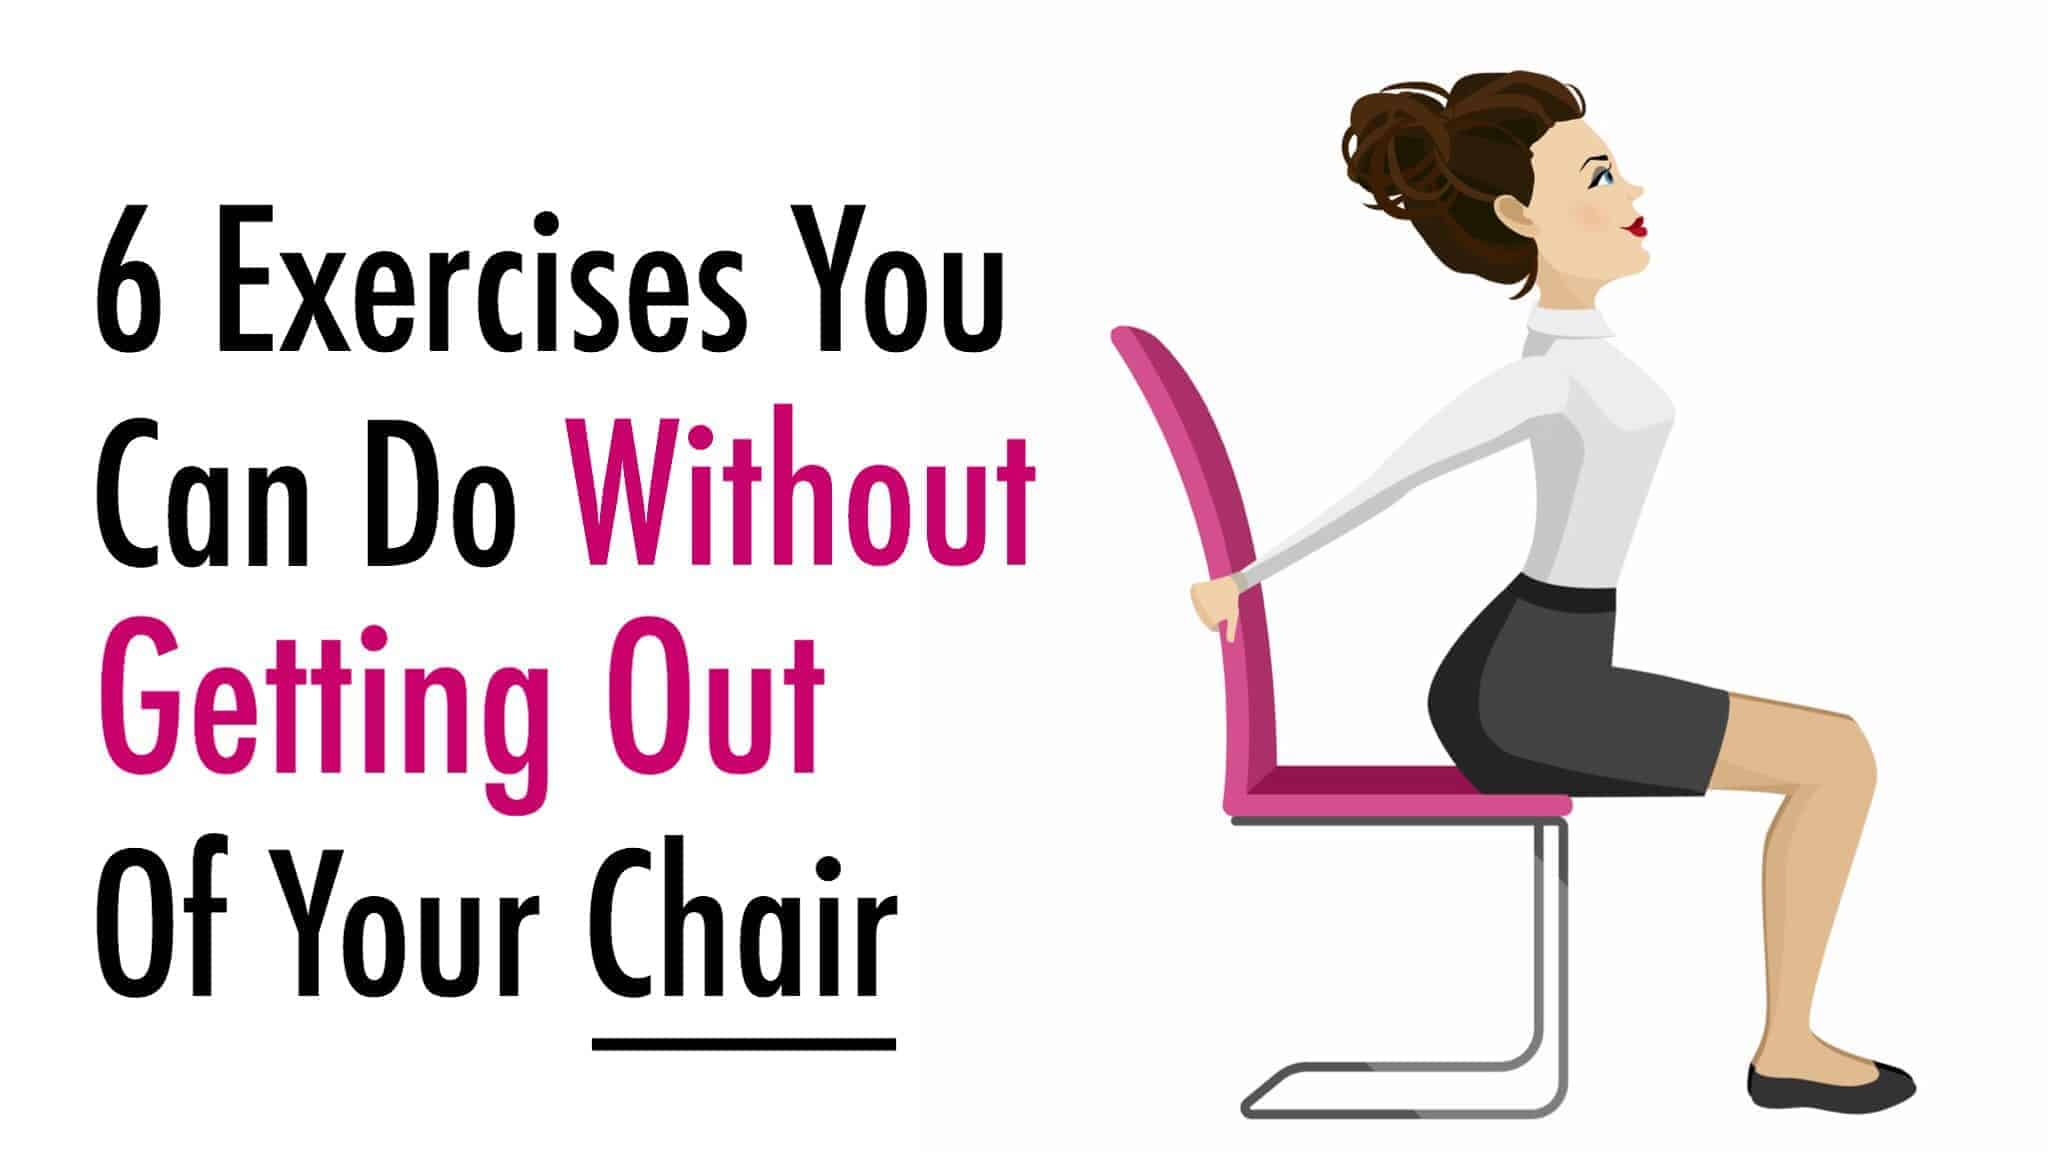 Chair Exercise 6 Exercises You Can Do Without Getting Out Of Your Chair